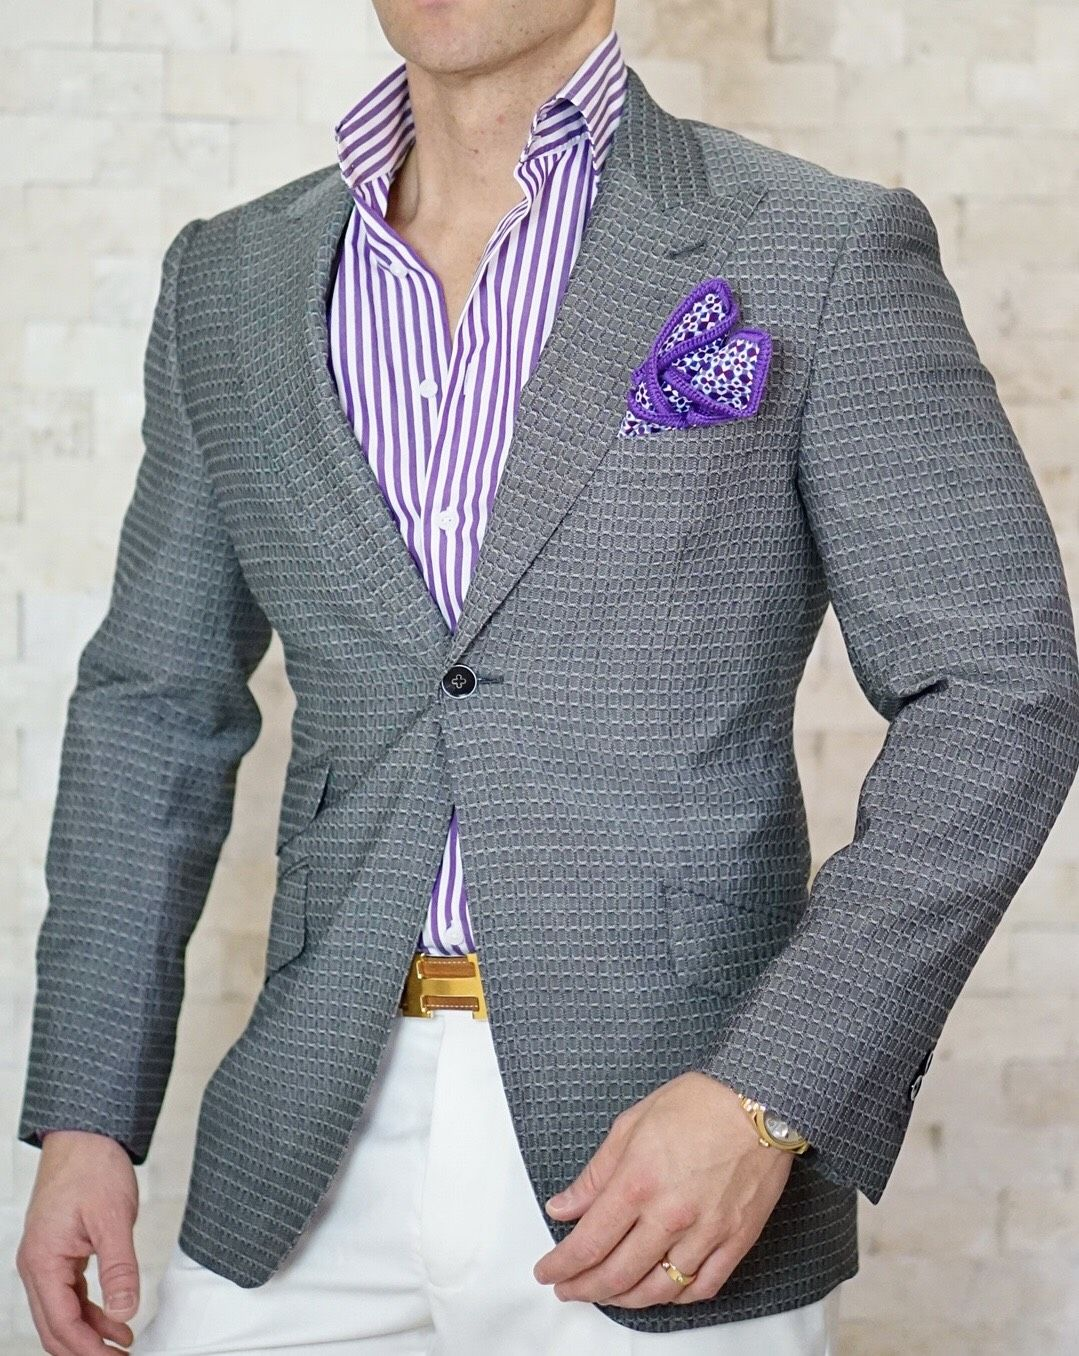 S By Sebastian Violet Awning Stripe Dress Shirt Suit Fashion Mens Fashion Casual Swag Outfits